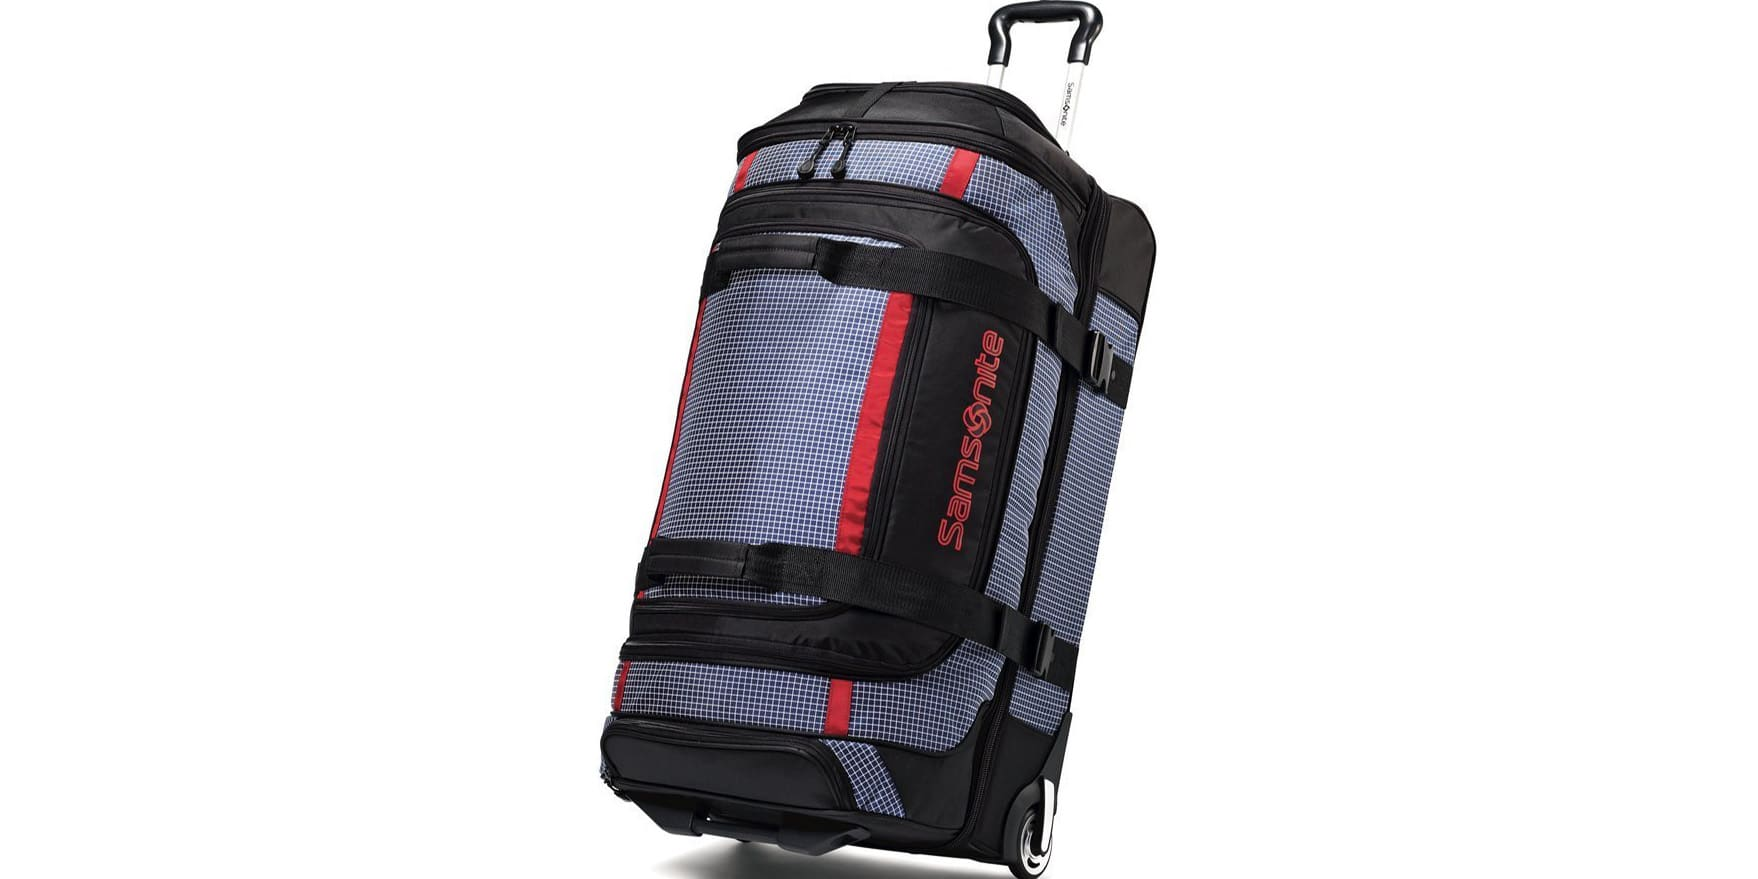 9a4bbcb8499d Top 17 Best Rolling Duffel Bags in 2019 - You Should Have for Travelling -  HQReview